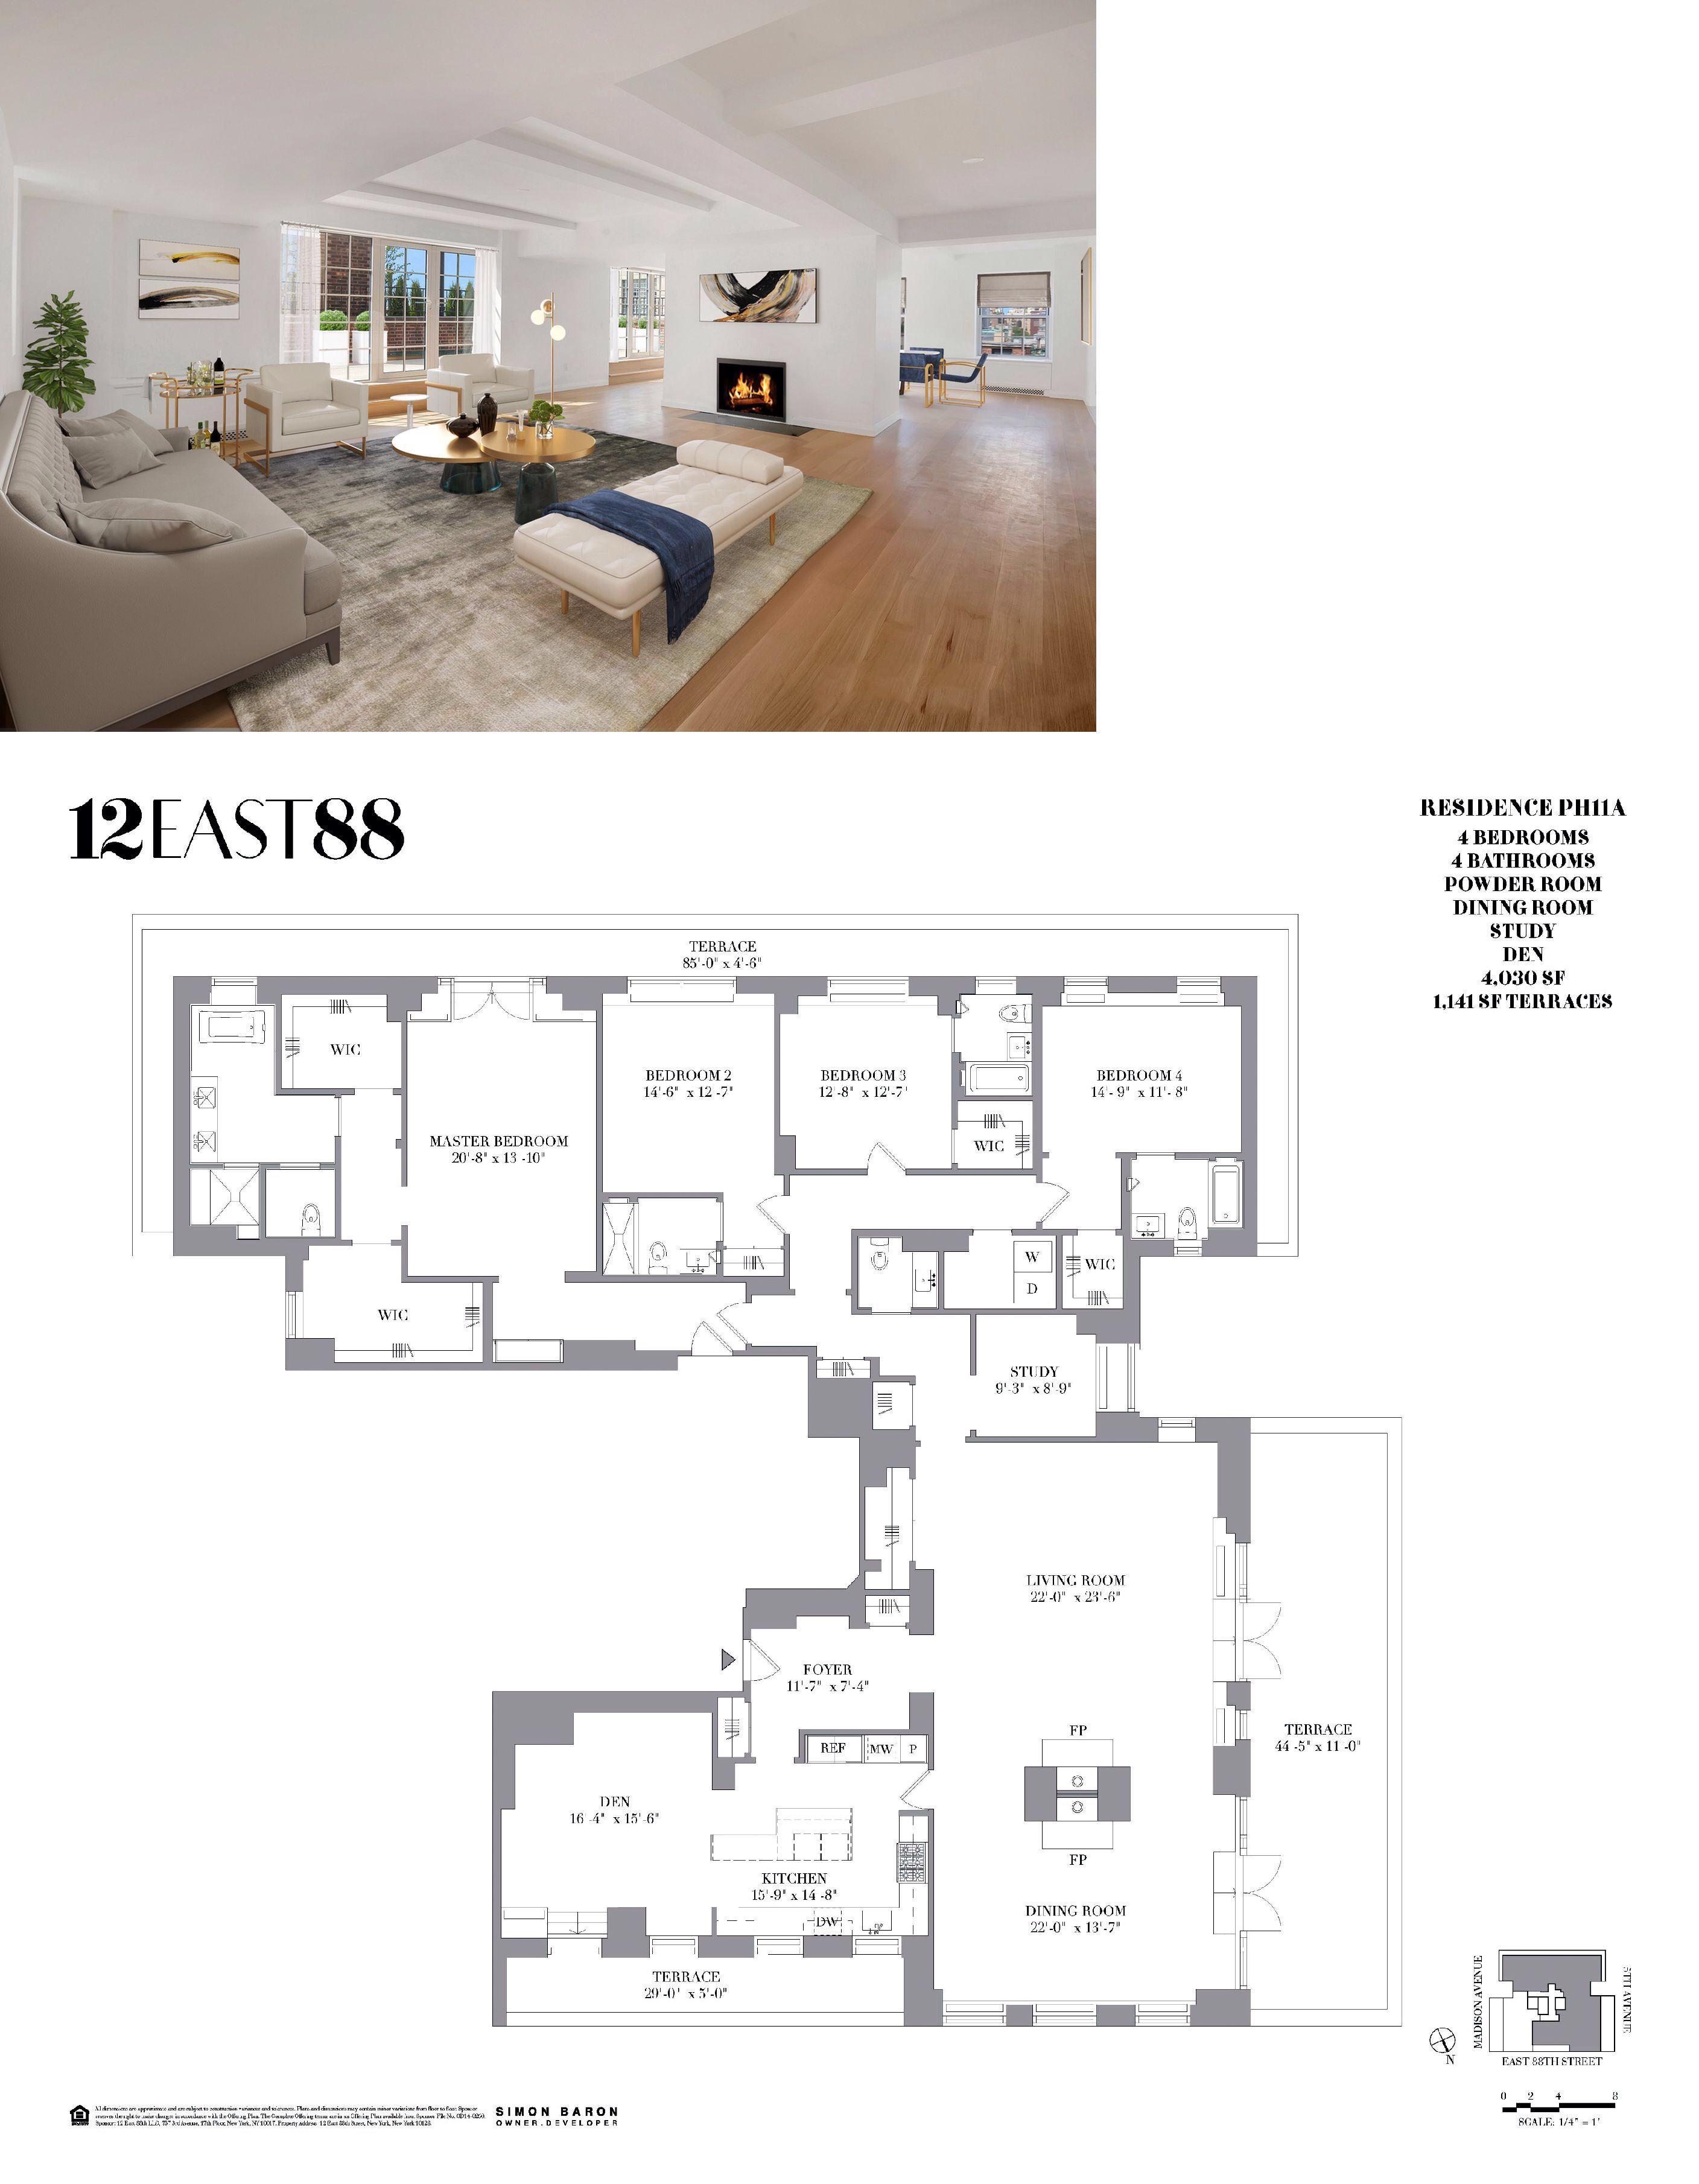 For 12 5m An Upper East Side Penthouse With 3 Private Terraces Central Park Views Curbed Ny Courtyard House Plans Apartment Floor Plans House Plans